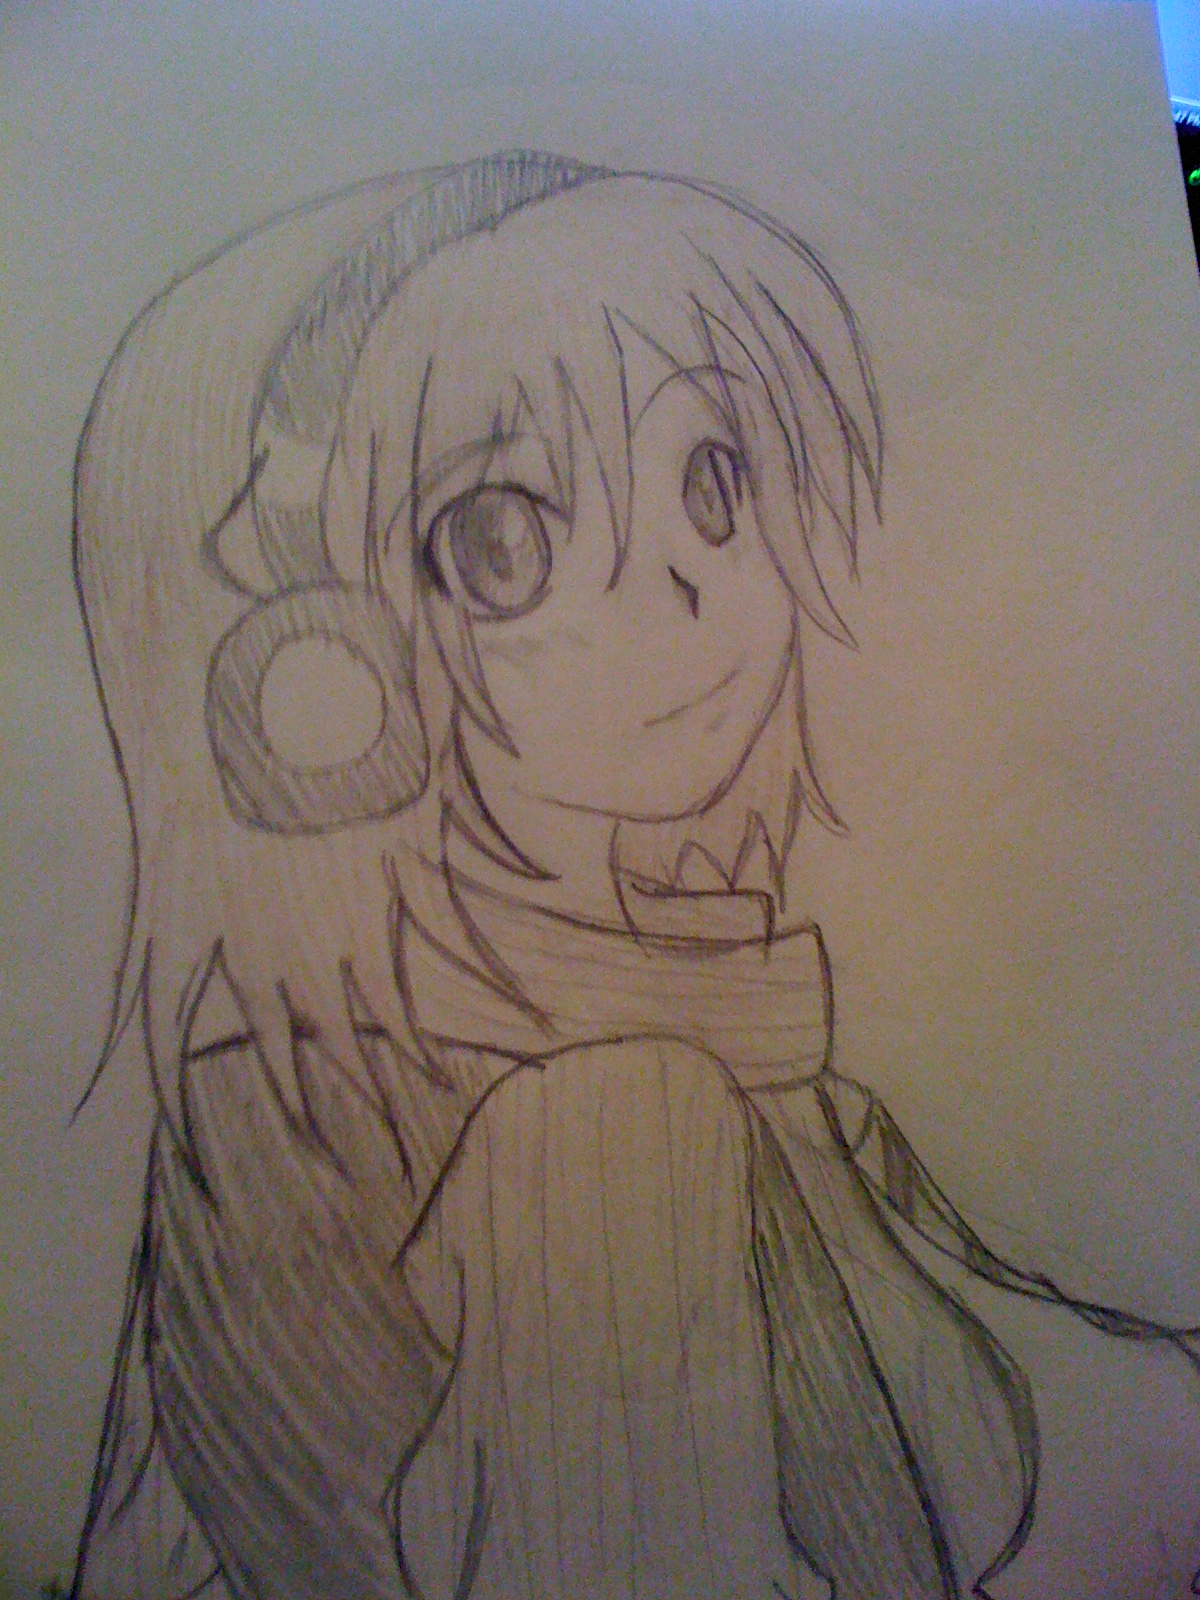 Anime Girl With Headphones - Picture By Lilpri - DrawingNow